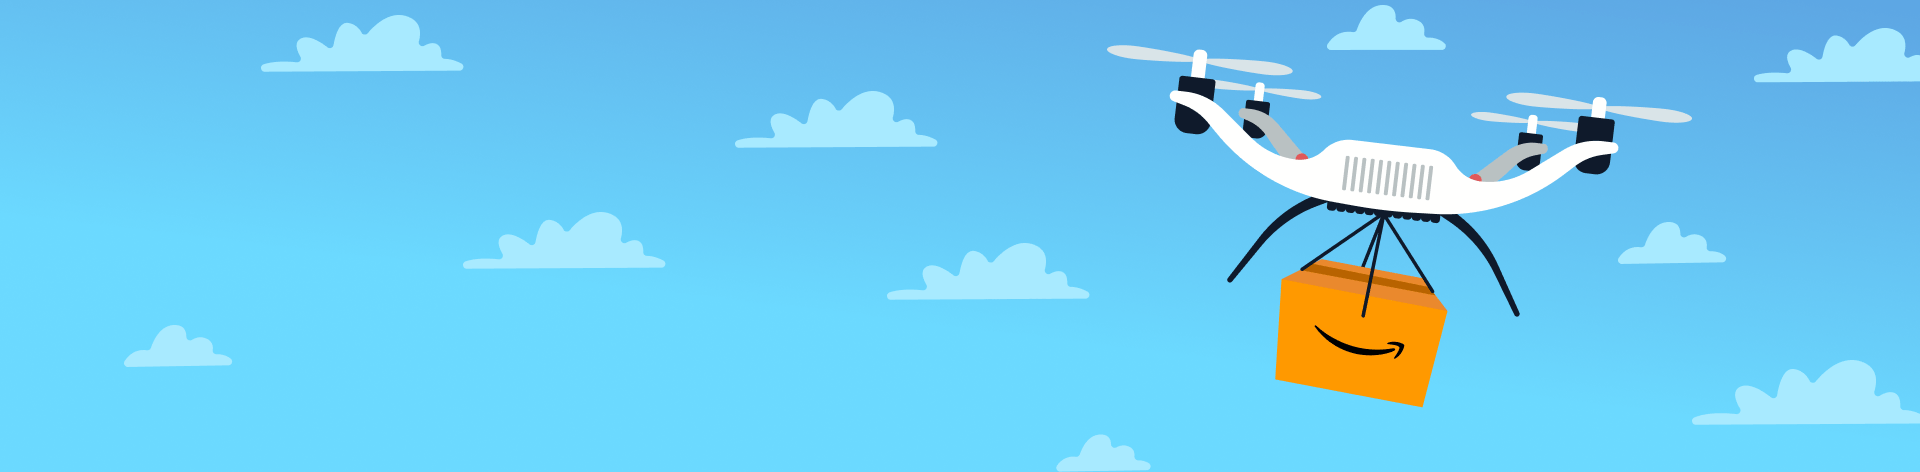 Amazon gets official FAA approval for drone delivery. New step of Amazon delivery.